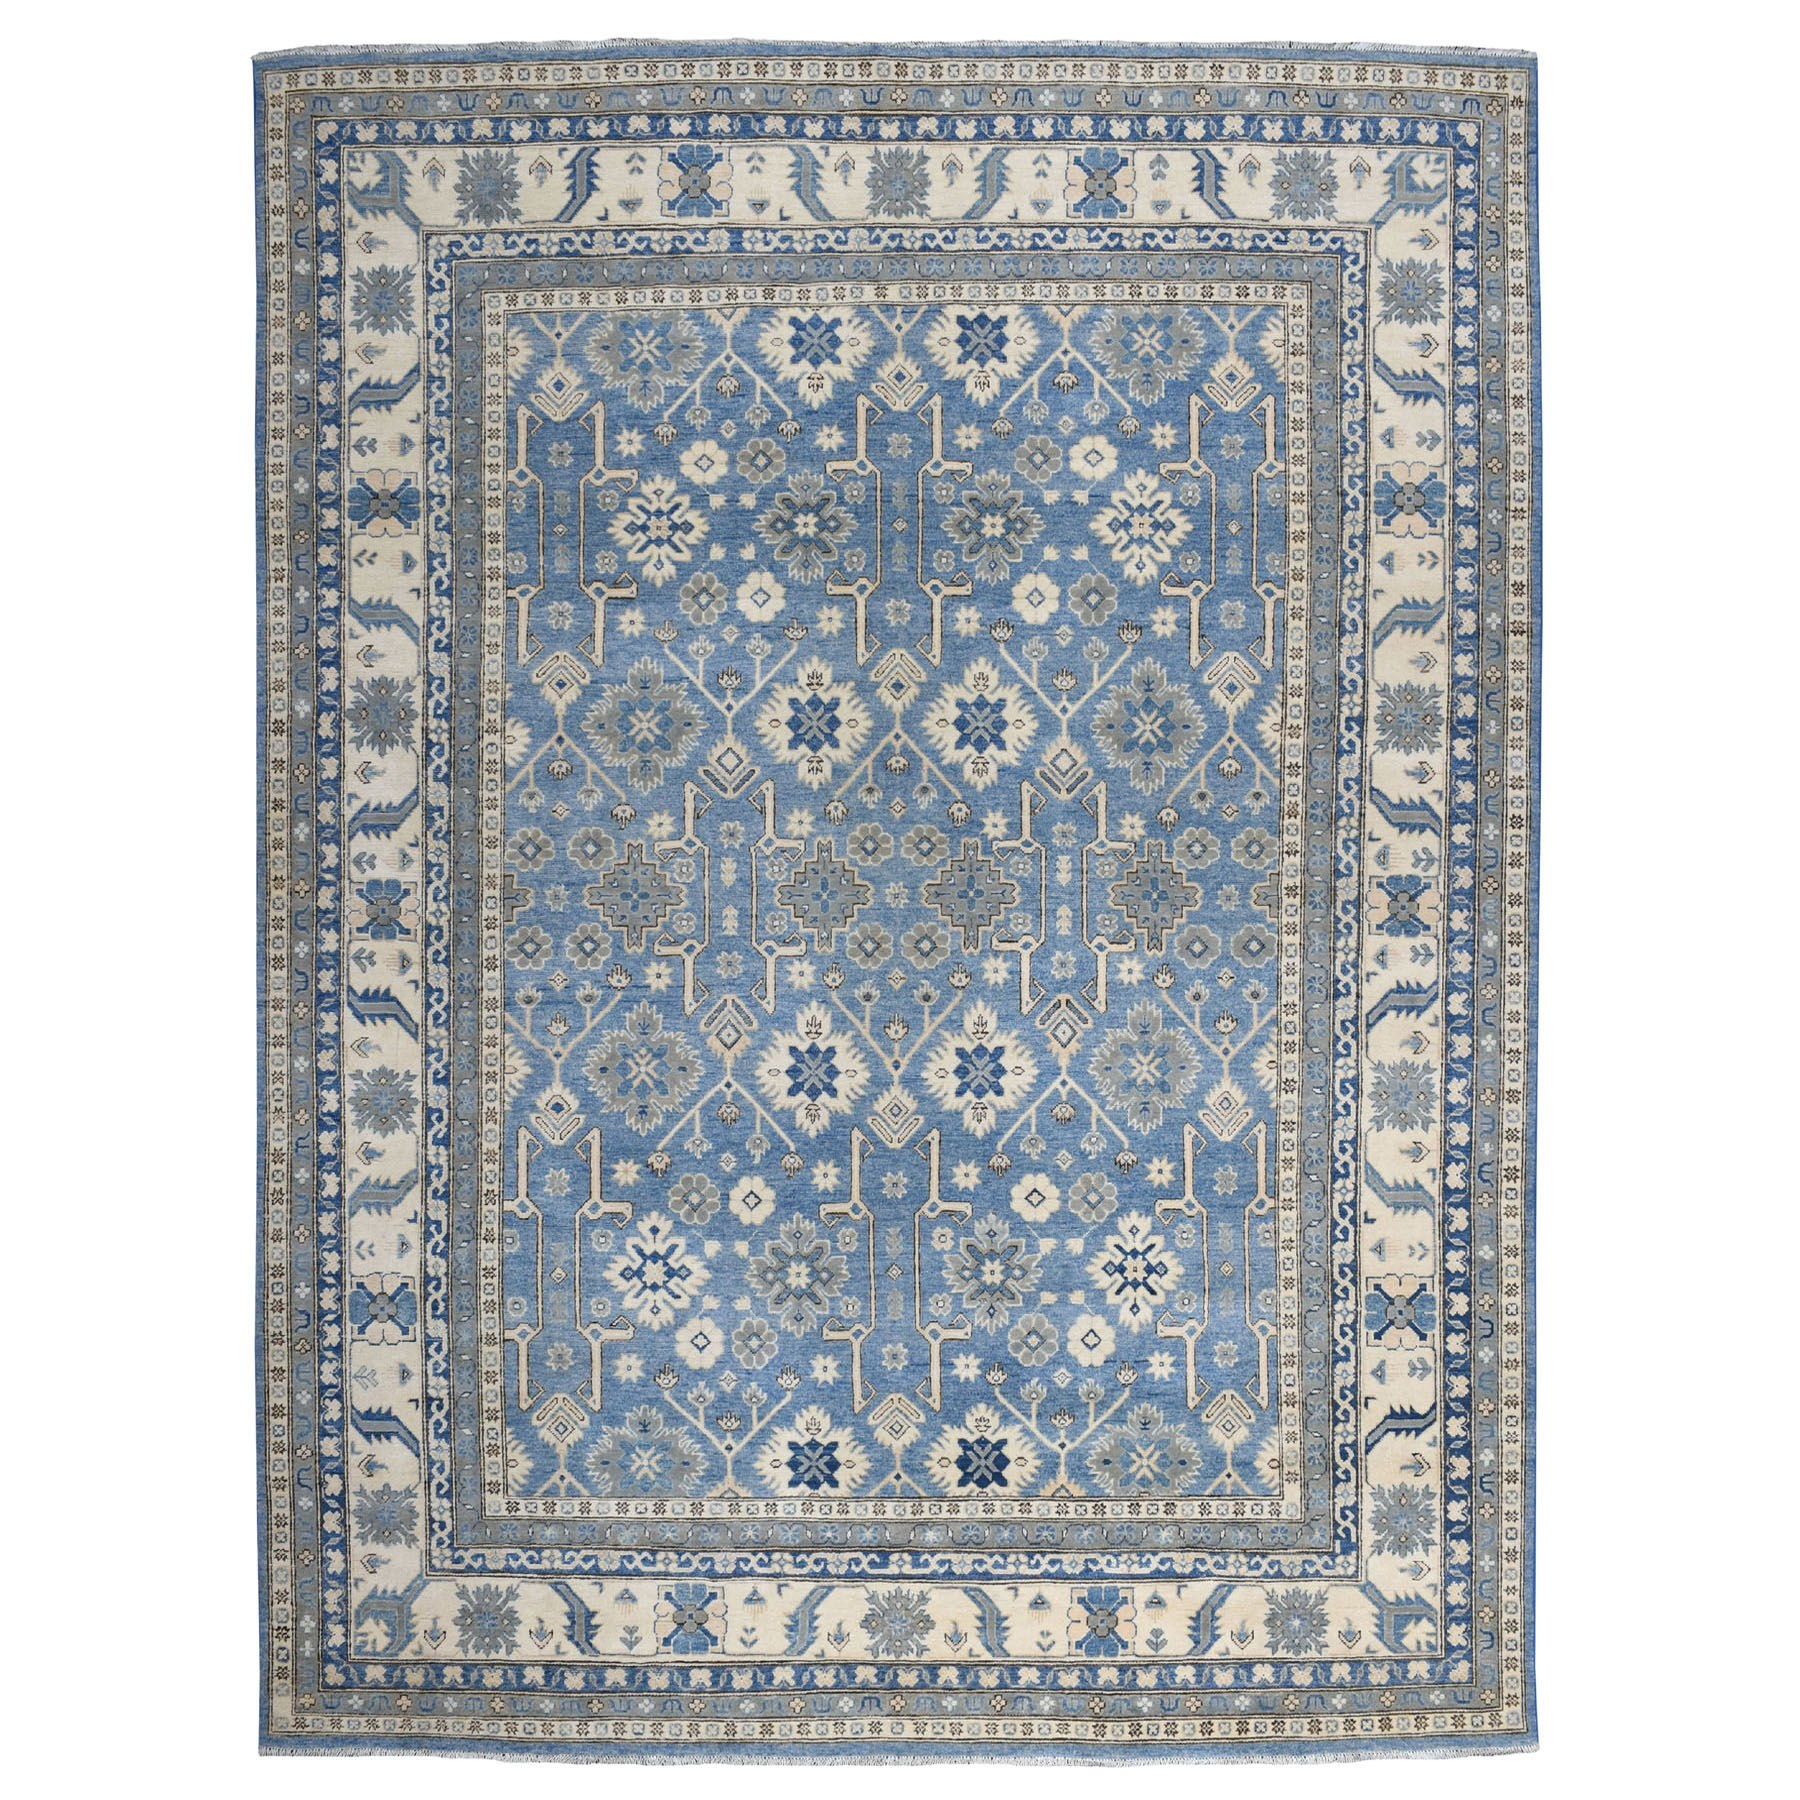 "9'x11'8"" Blue All Over Design Hand Knotted Organic Wool Vintage Look Kazak Oriental Rug"